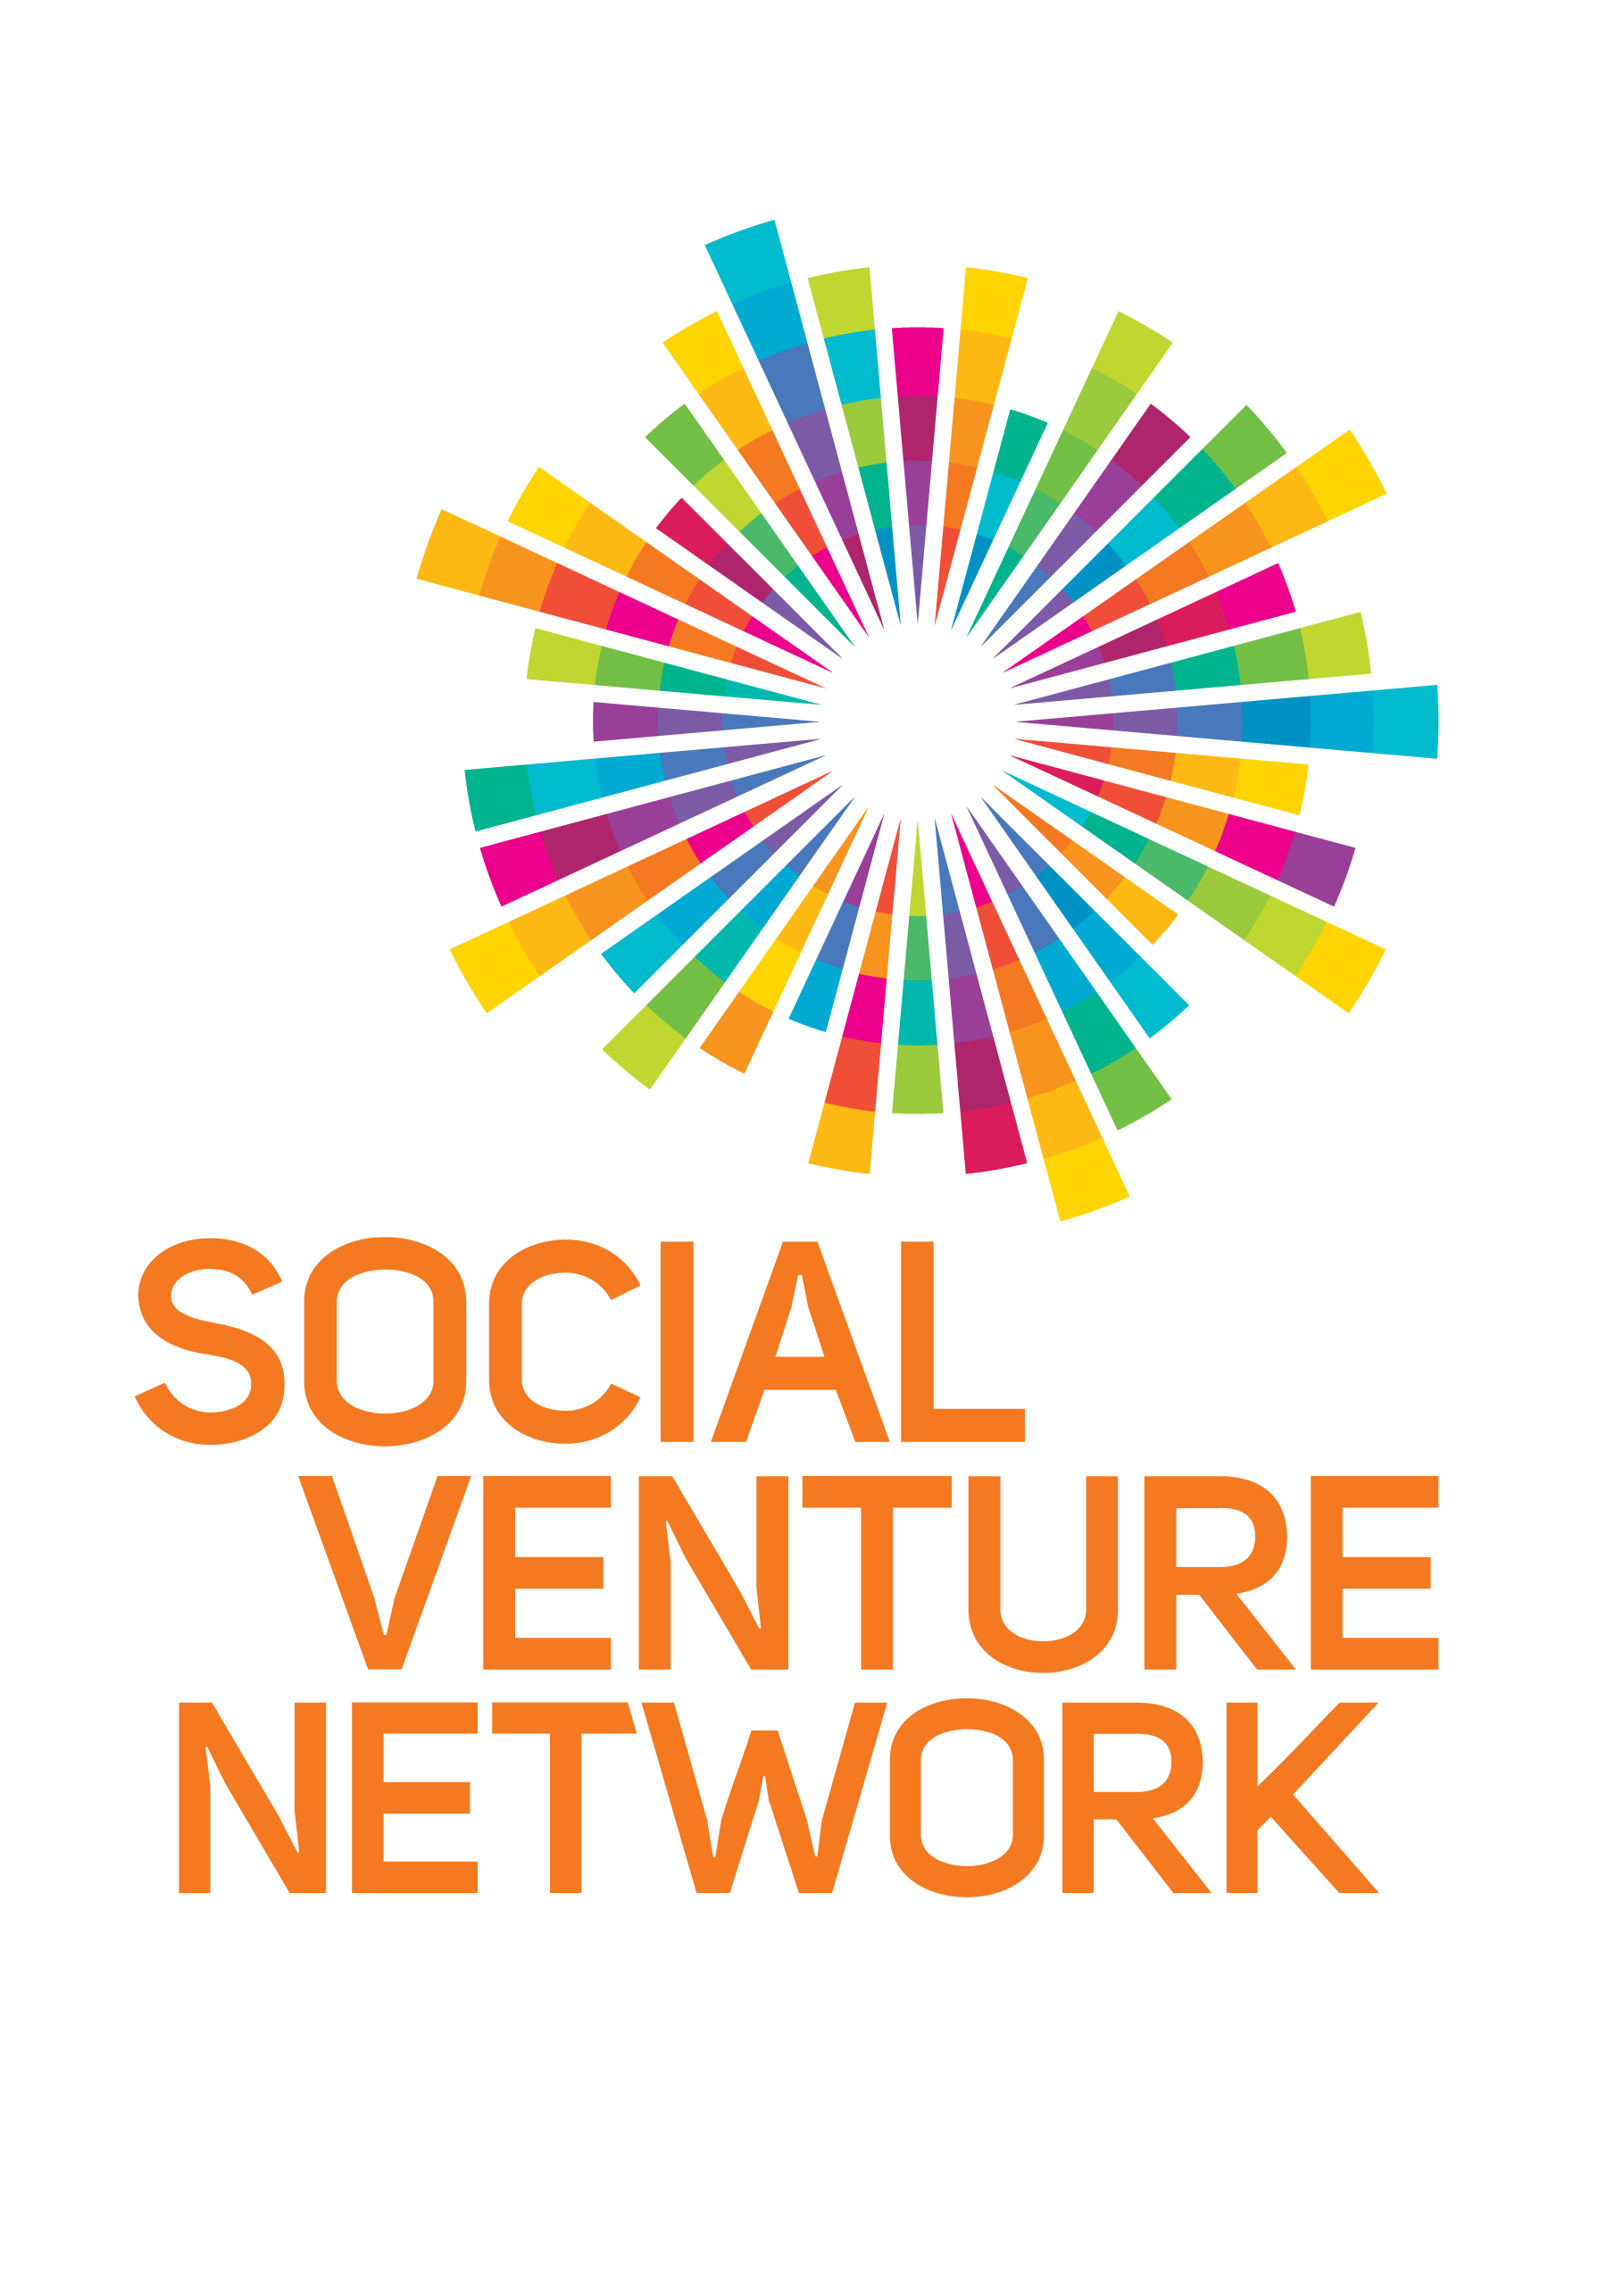 Social Venture Network Launches Book Series Image.